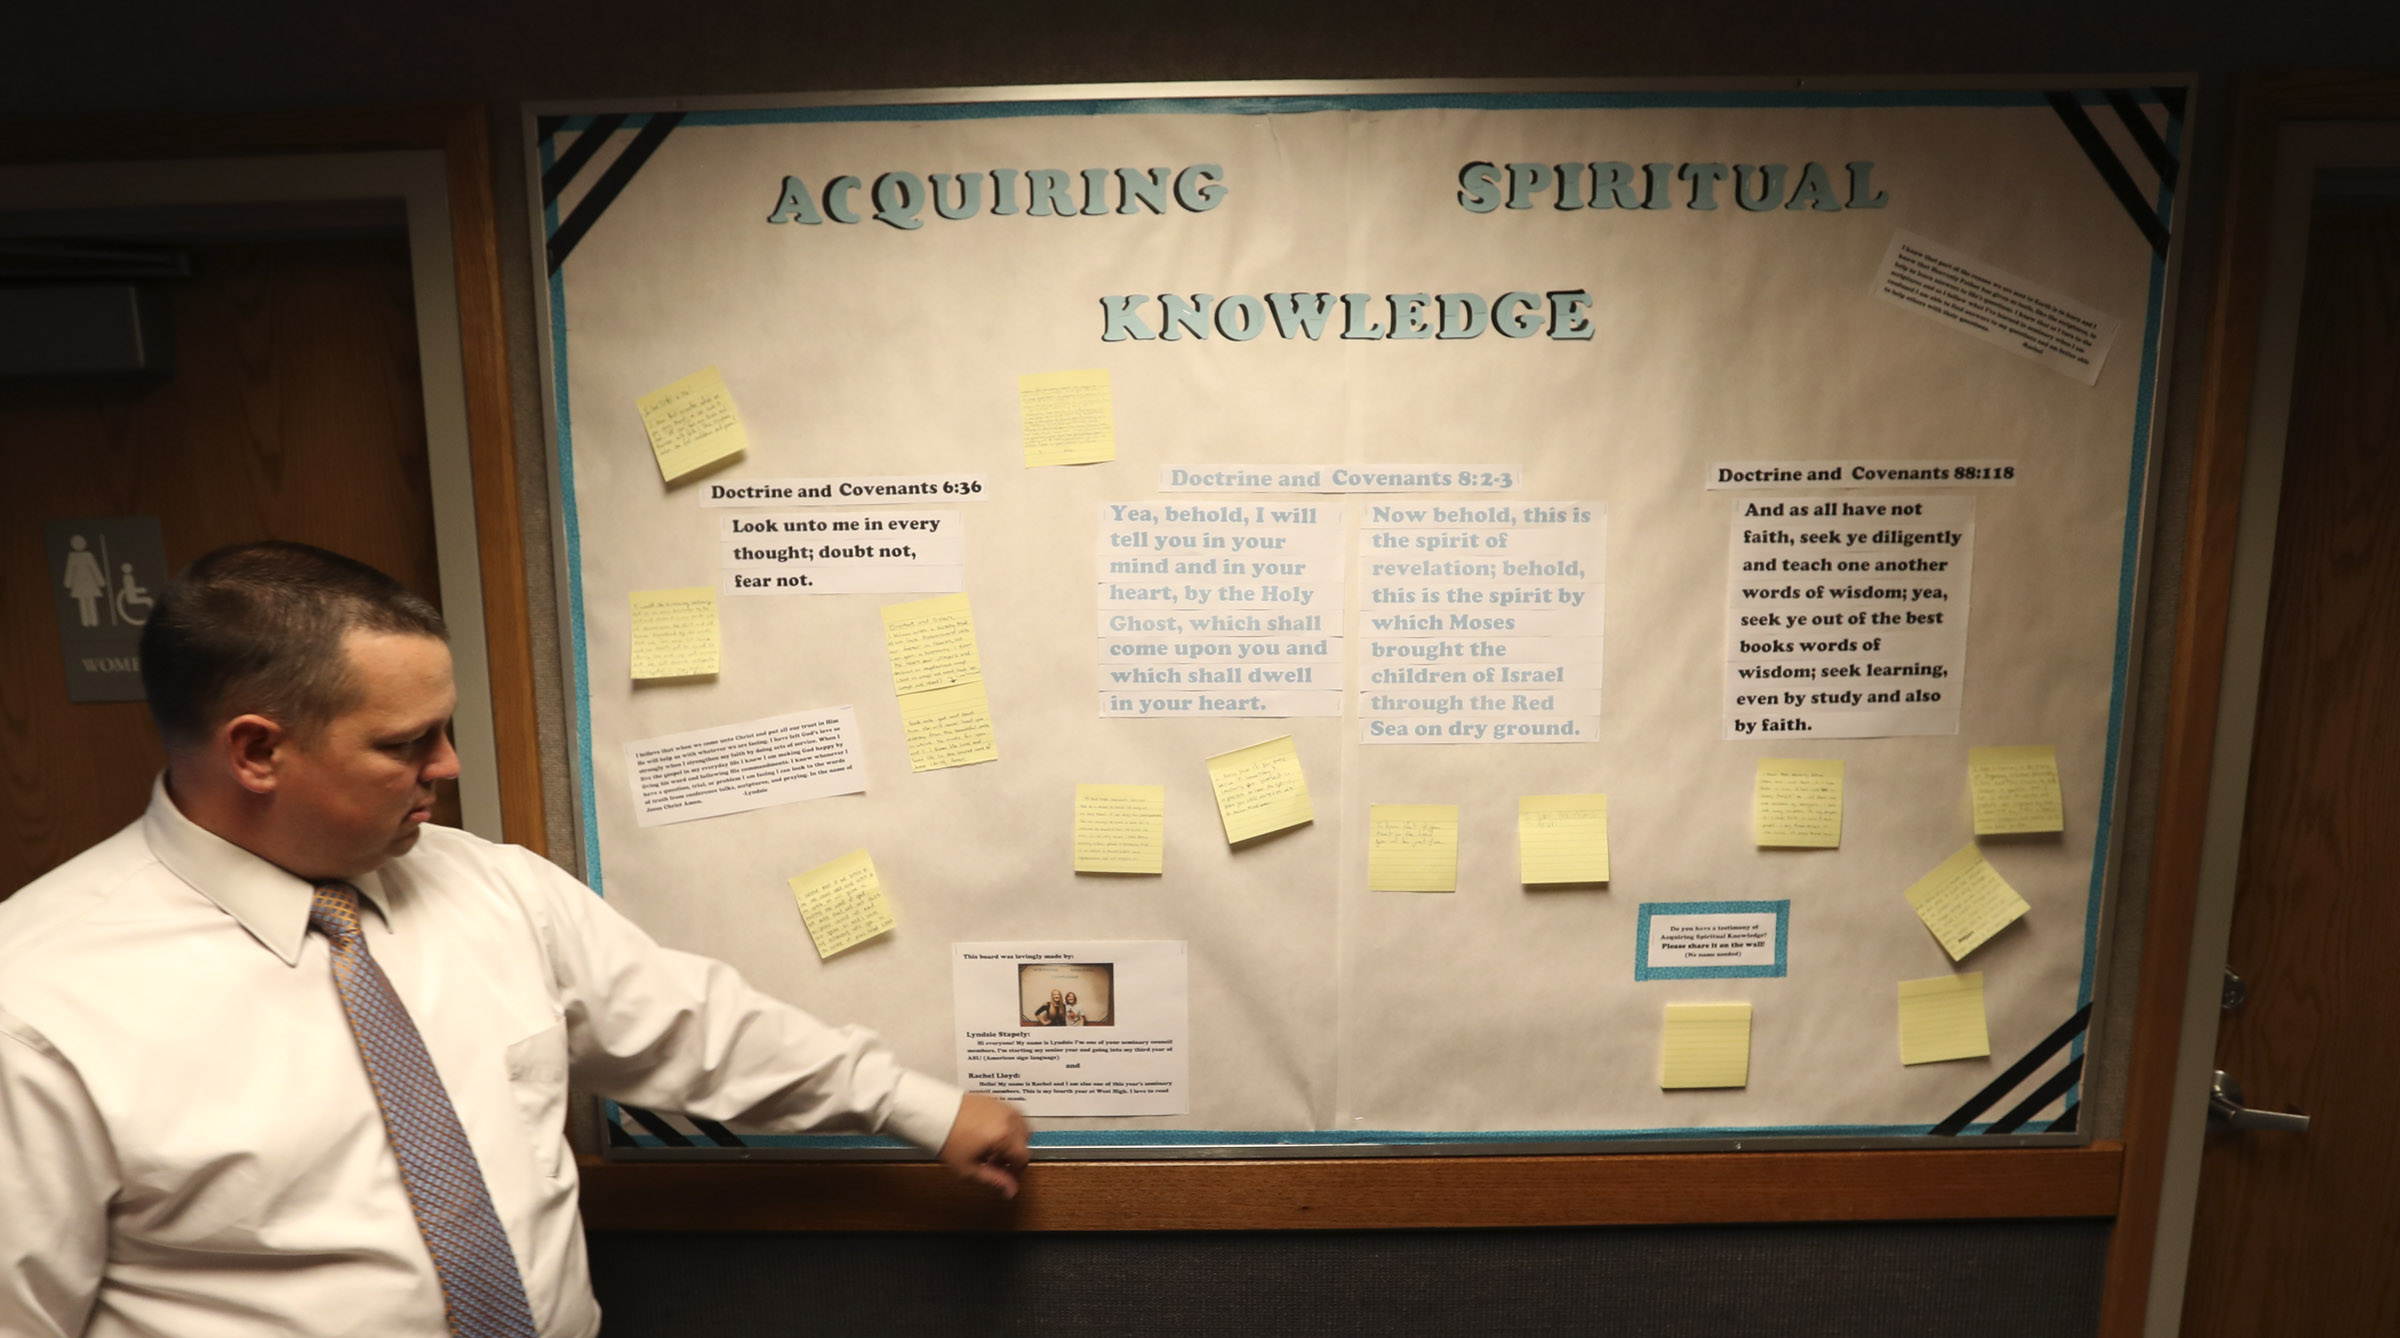 West High seminary principal Trent Smith with a bulletin board dealing with acquiring spiritual knowledge before one of his LDS seminary classes at West High School in Salt Lake City on Monday, Sept. 17, 2018.